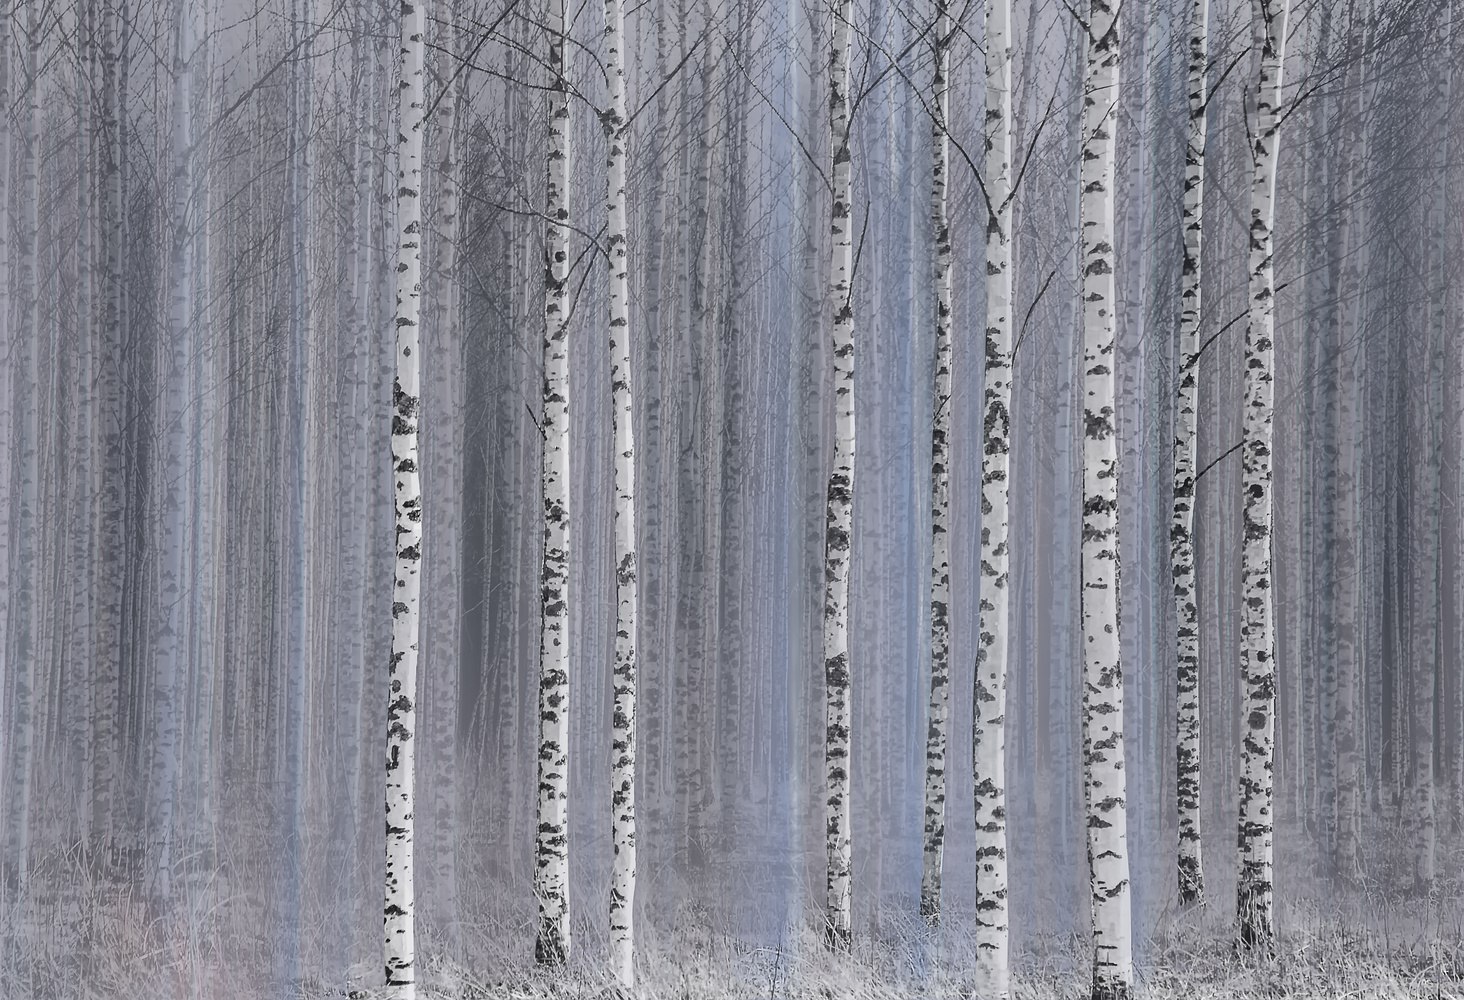 The Birch Woodland by Carl Irjala